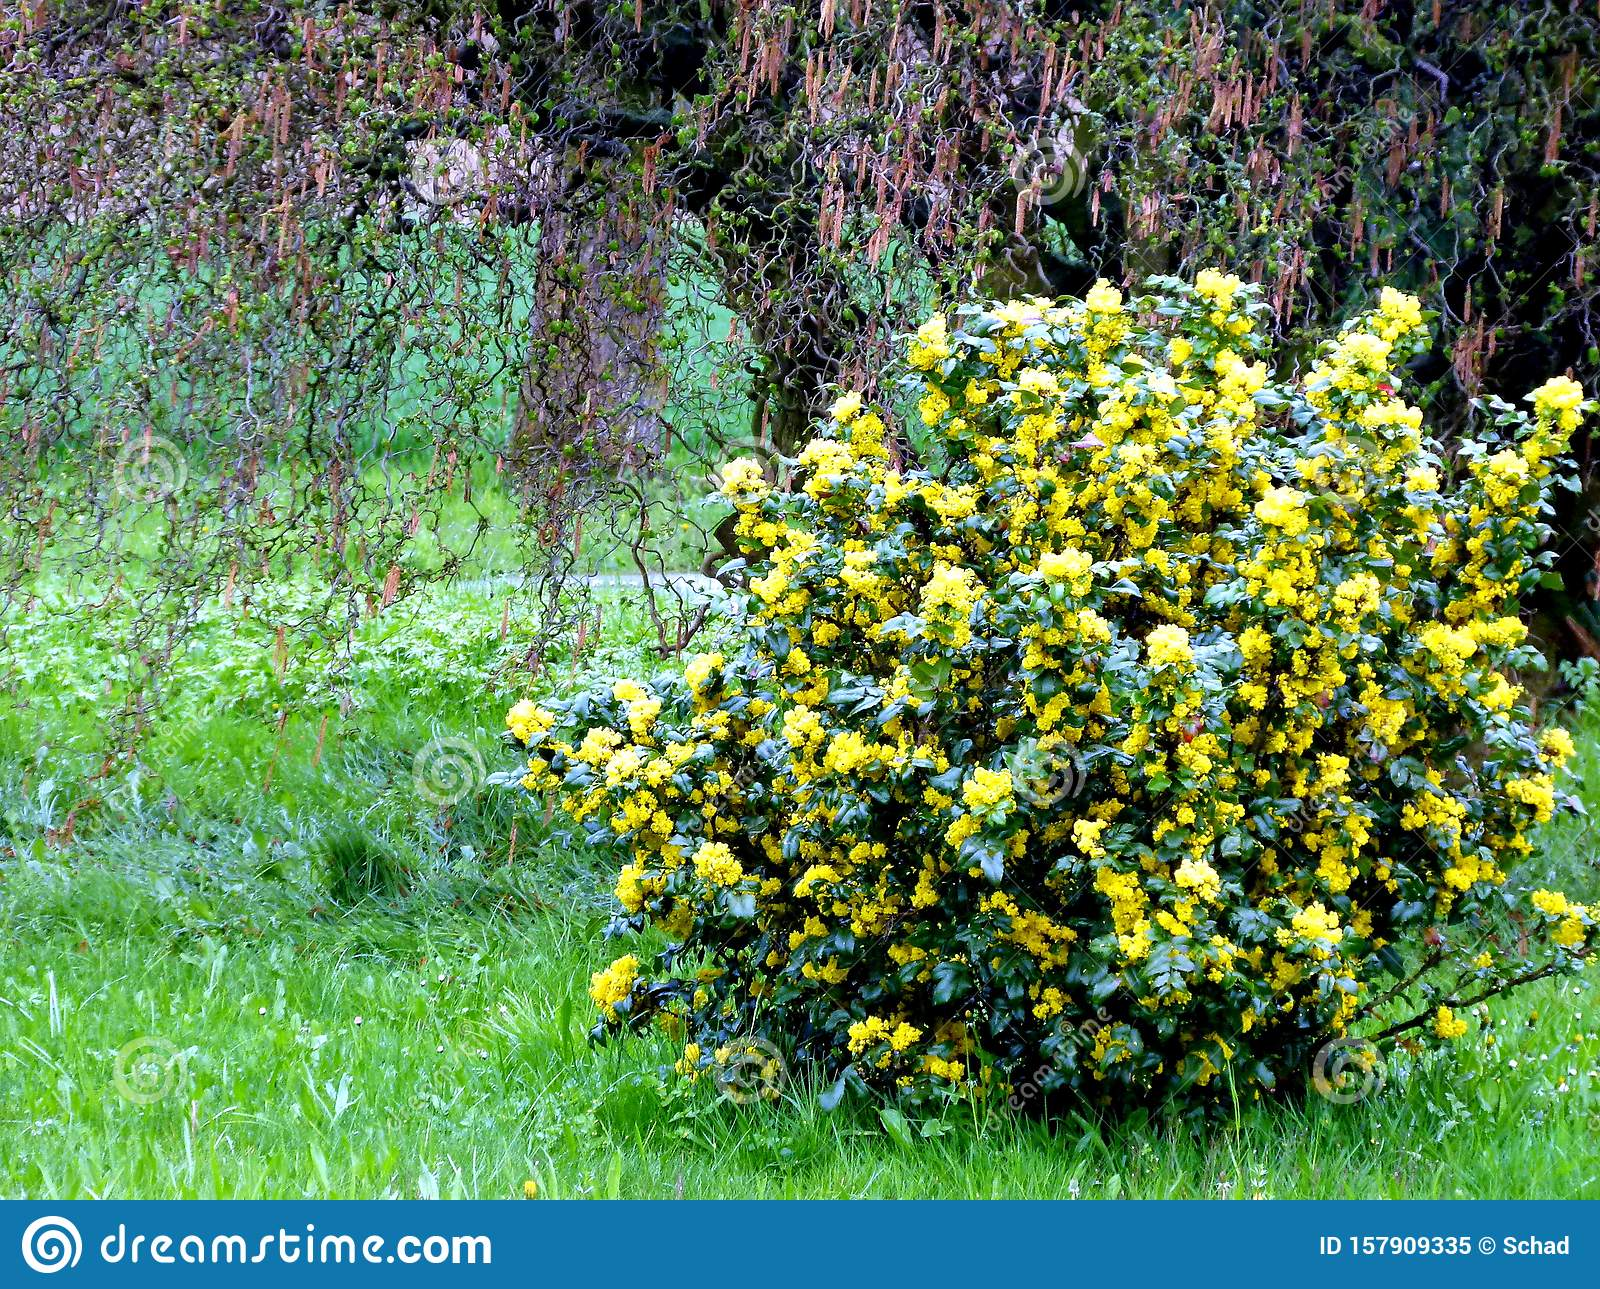 Meadow With Yellow Flowering Bush And Hazel Tree In The Background